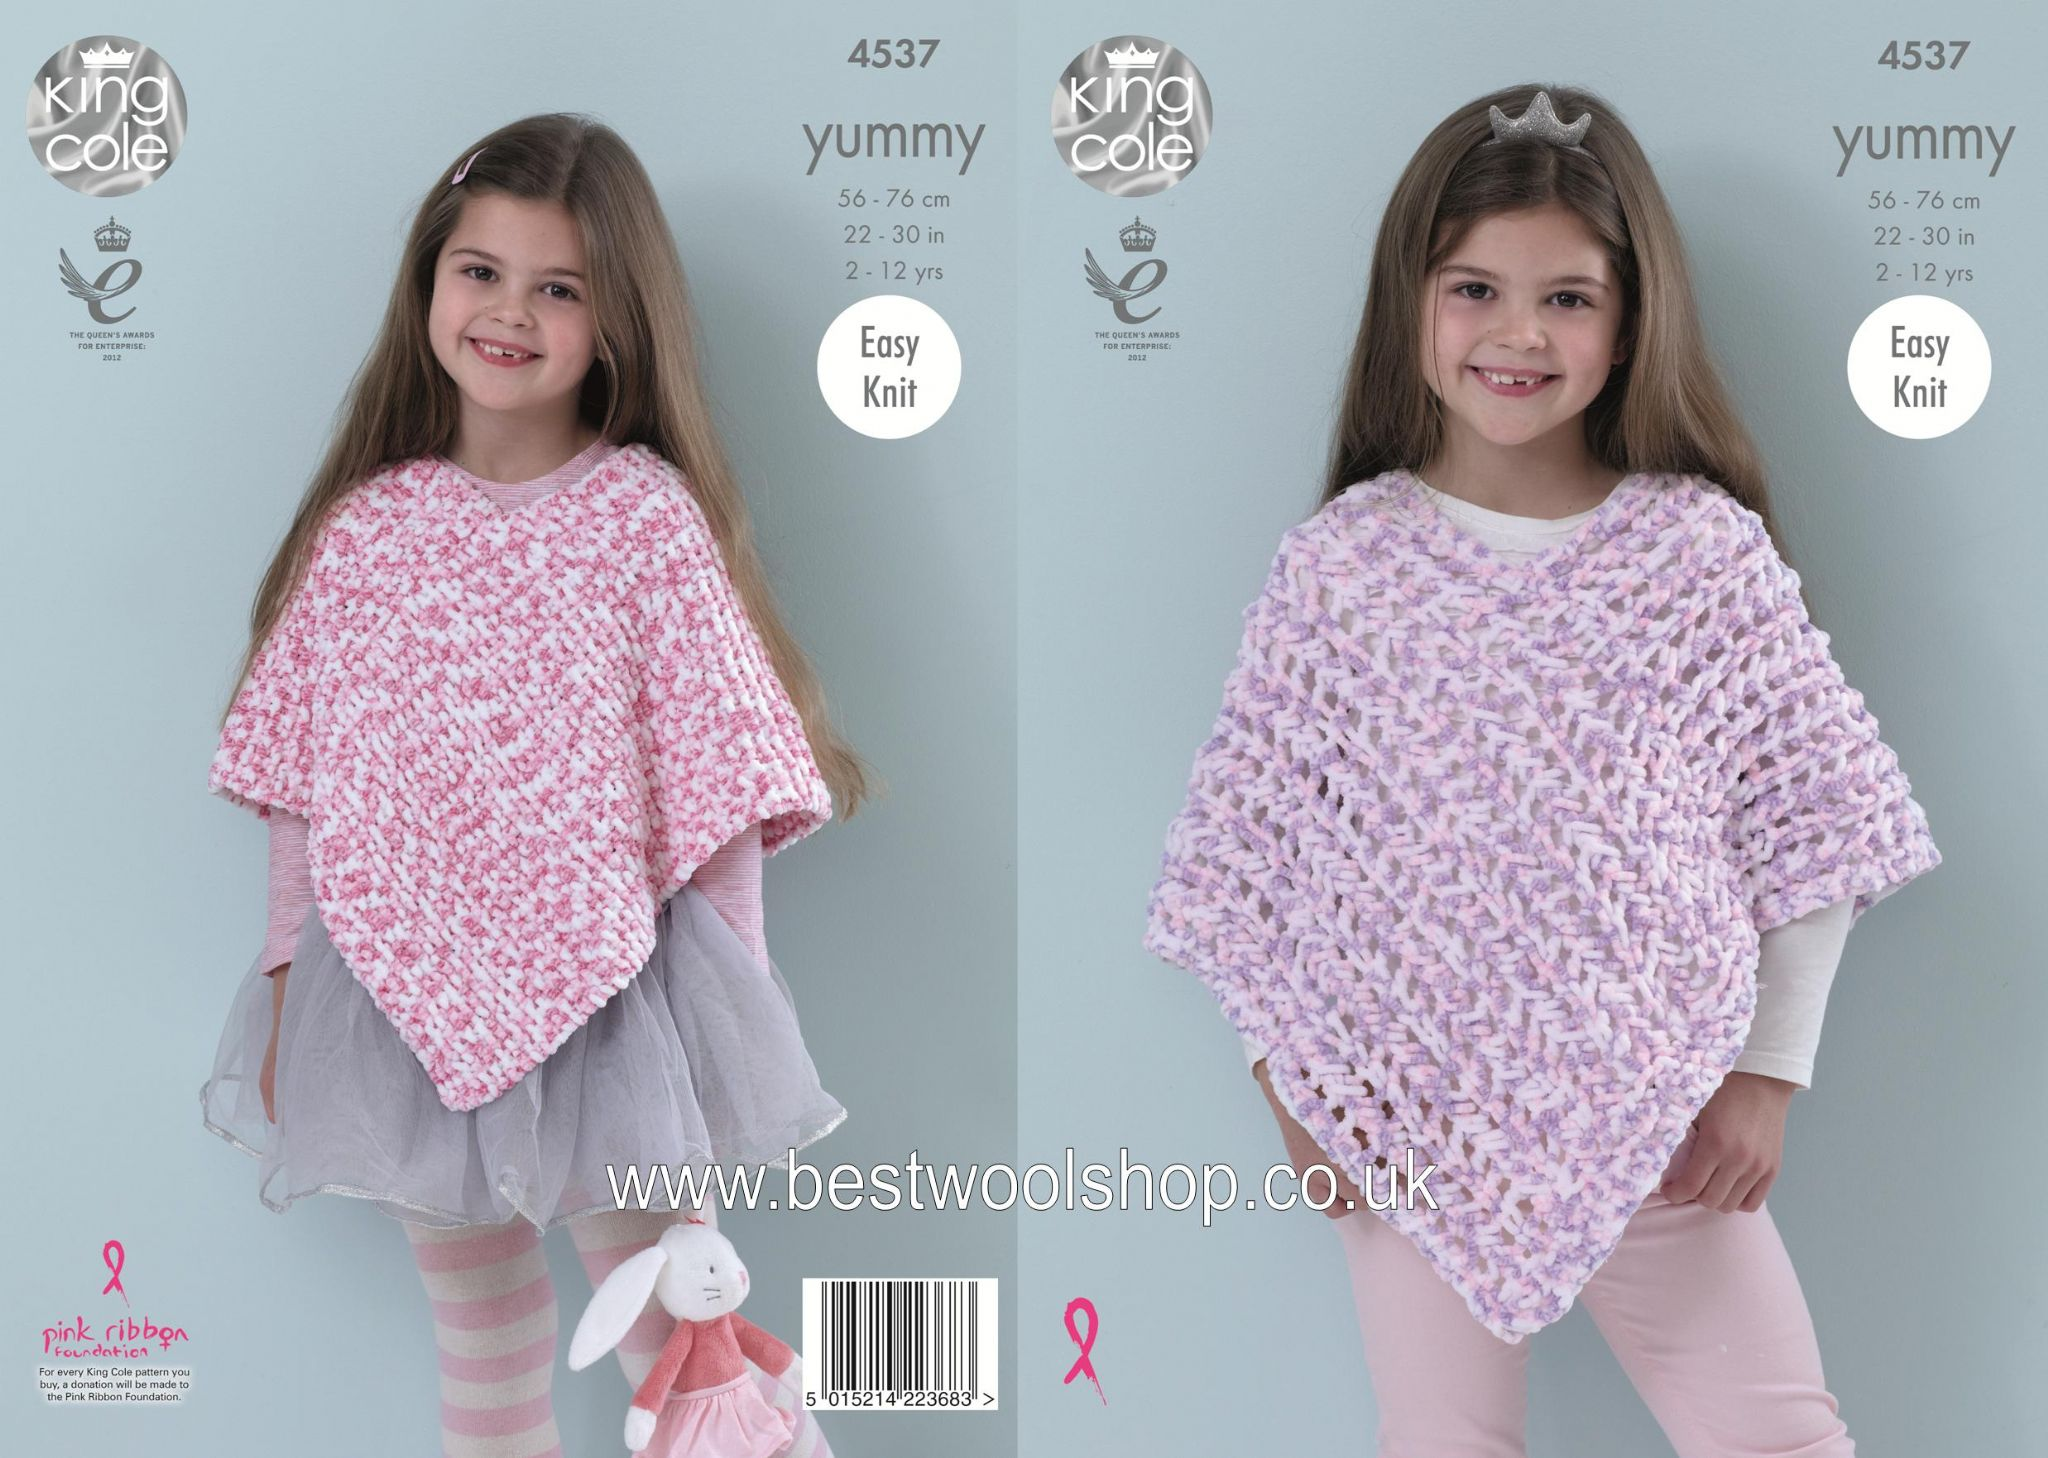 4537 - KING COLE YUMMY CHUNKY EASY KNIT PONCHO KNITTING PATTERN - 2 OPTIONS  - TO FIT 2 TO 12 YEARS